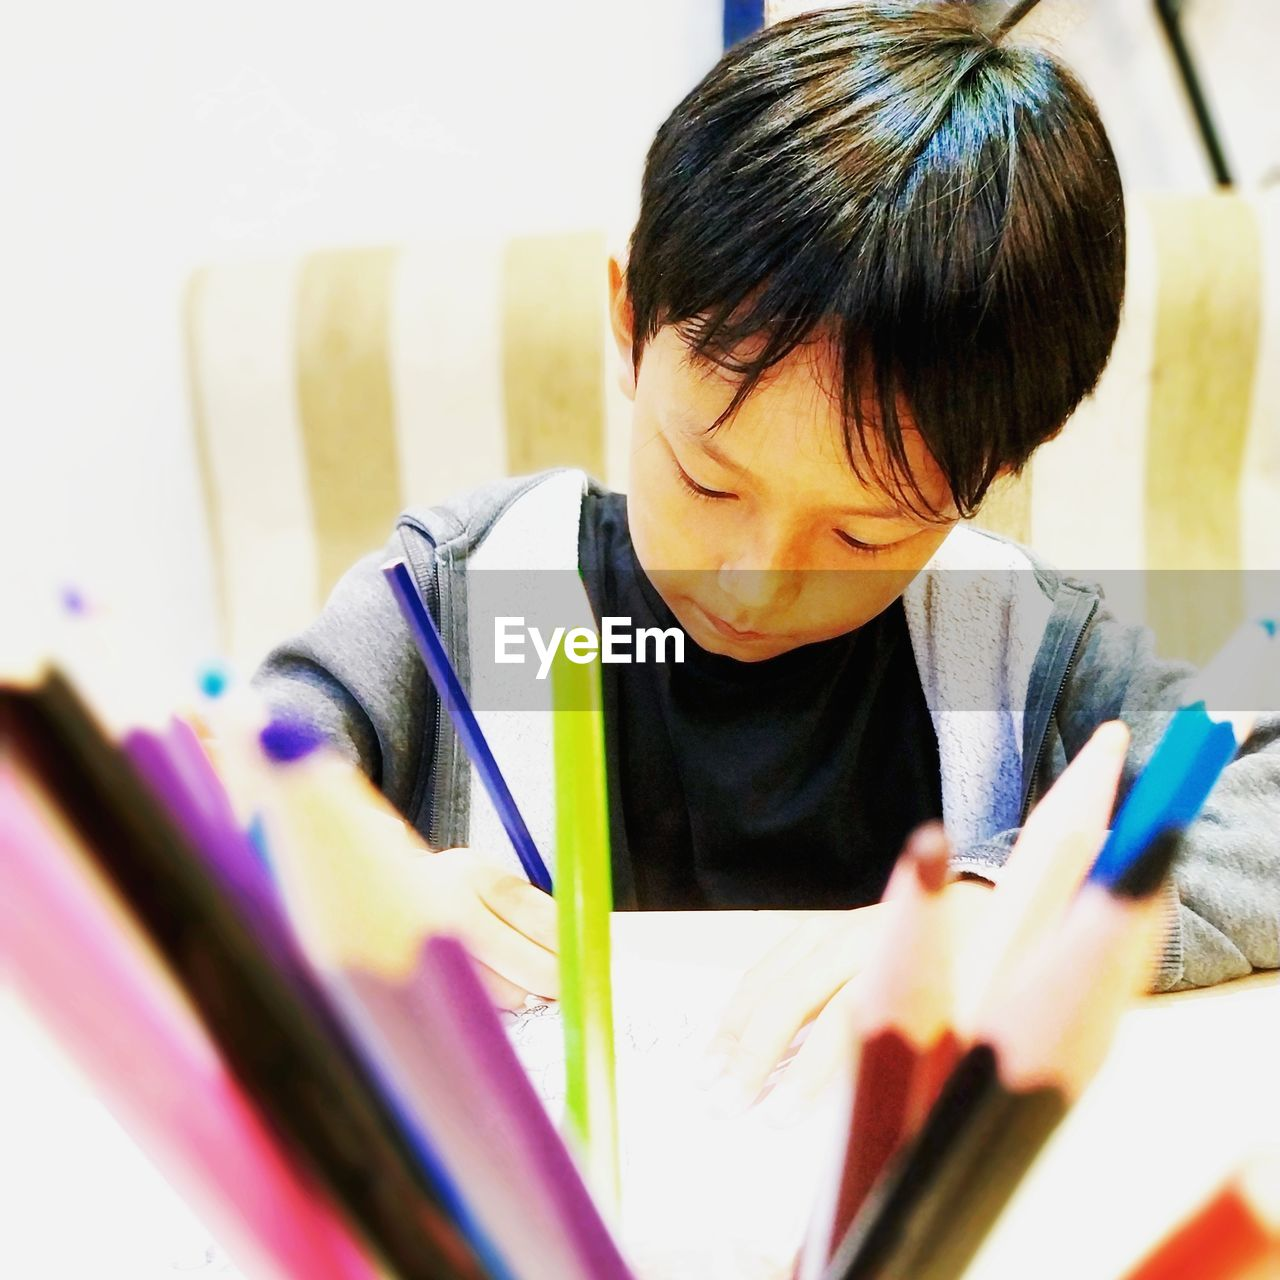 real people, one person, selective focus, child, indoors, book, holding, publication, headshot, childhood, lifestyles, boys, education, learning, paper, writing, leisure activity, studying, innocence, hairstyle